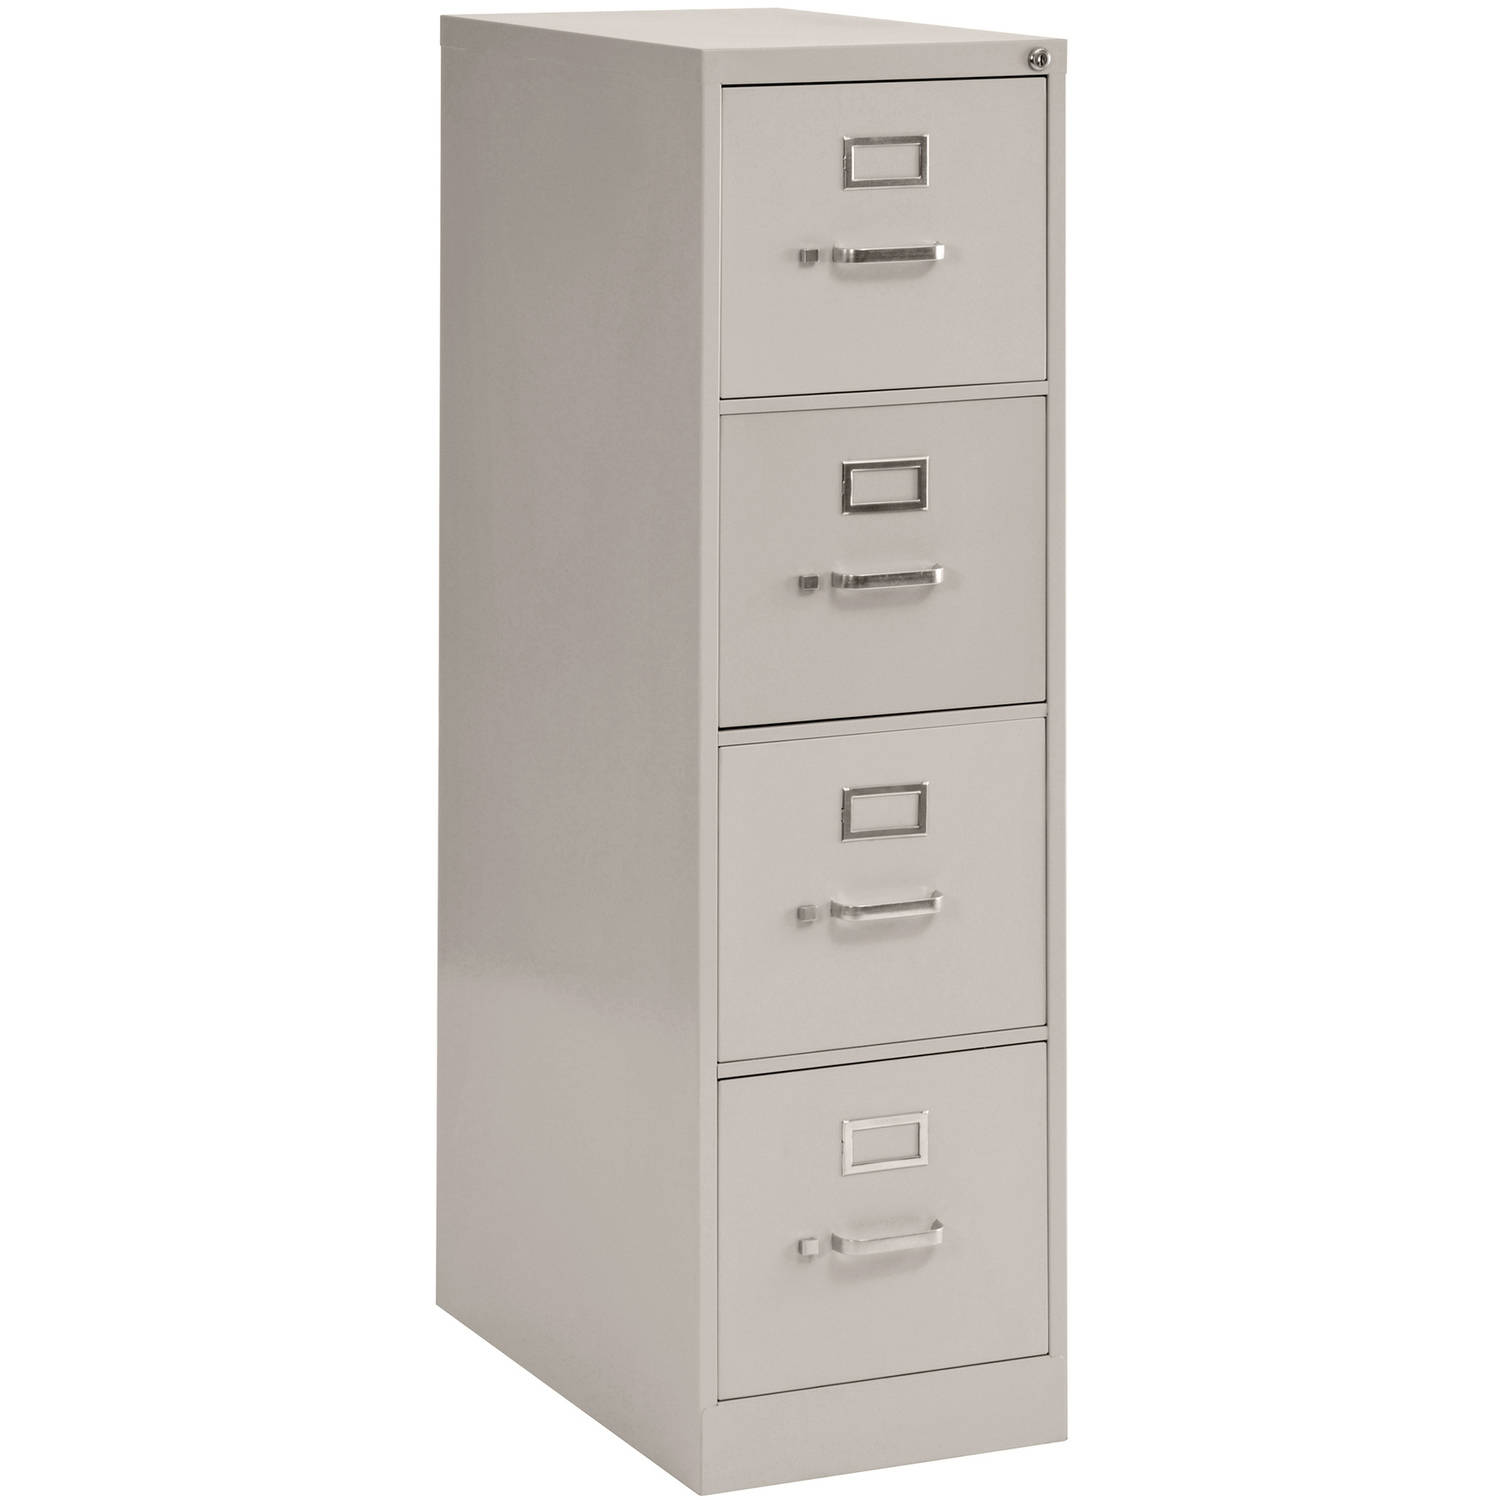 contract furniture cabinets drawers bisley drawer view enlarged economy storage filing cabinet metal dams office